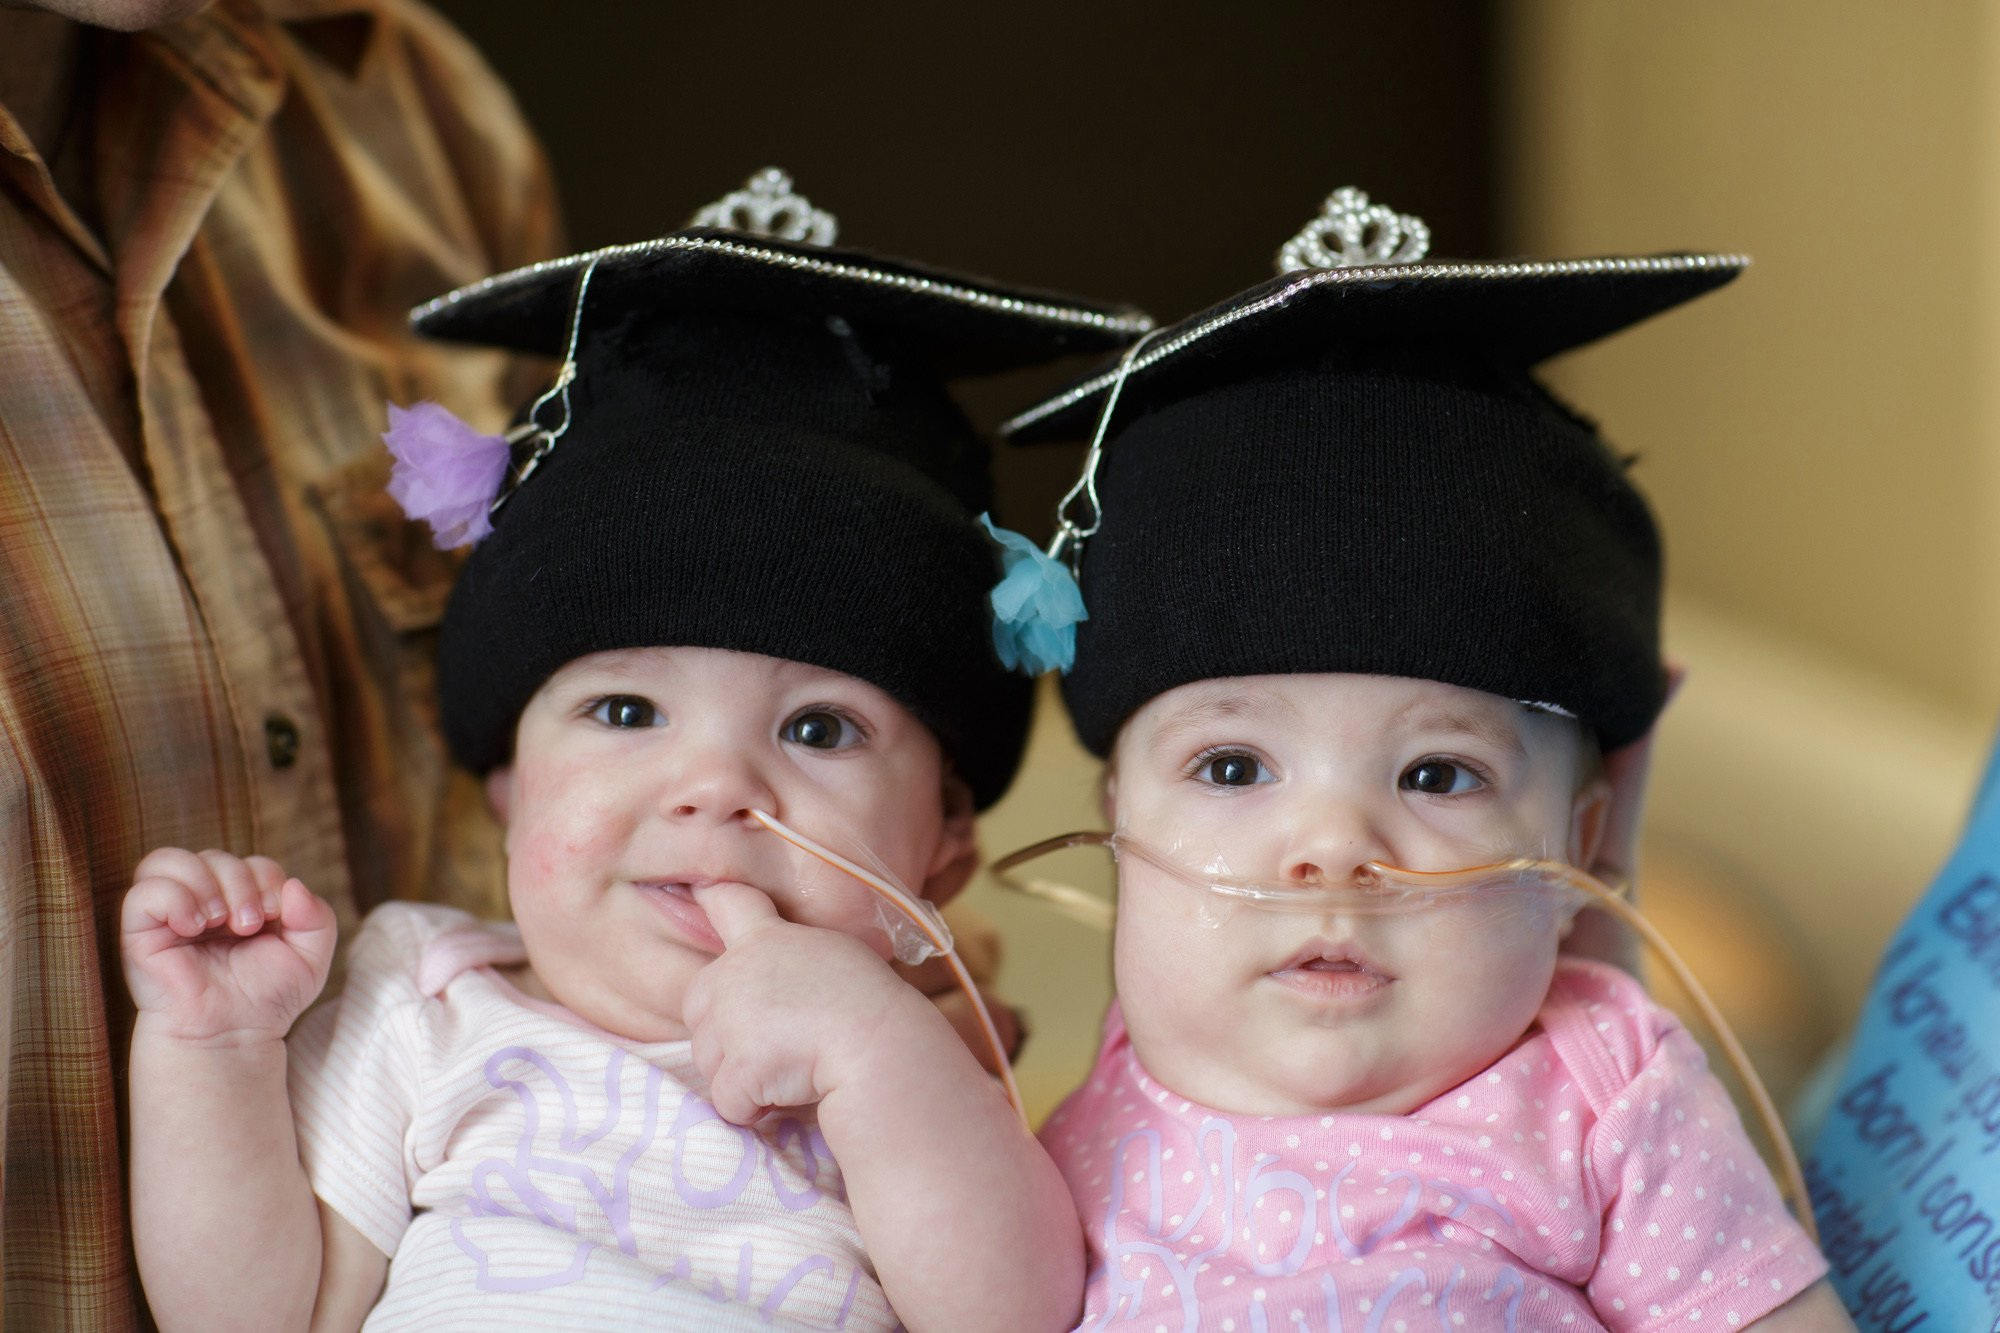 These once-conjoined twins are headed home for Christmas